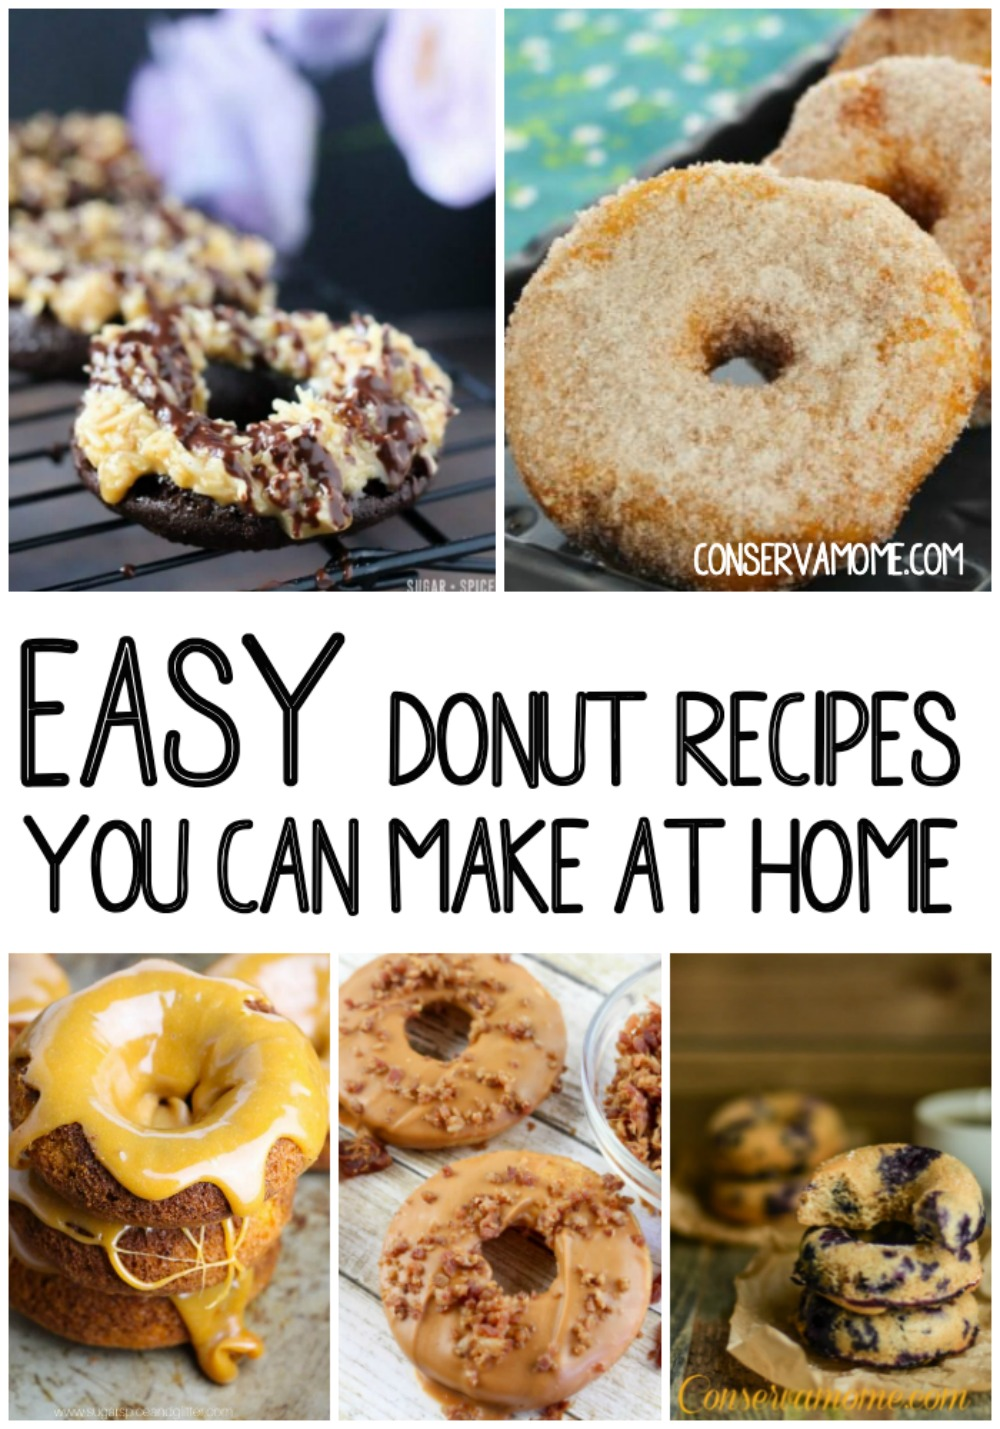 Easy donut recipes you can make at home